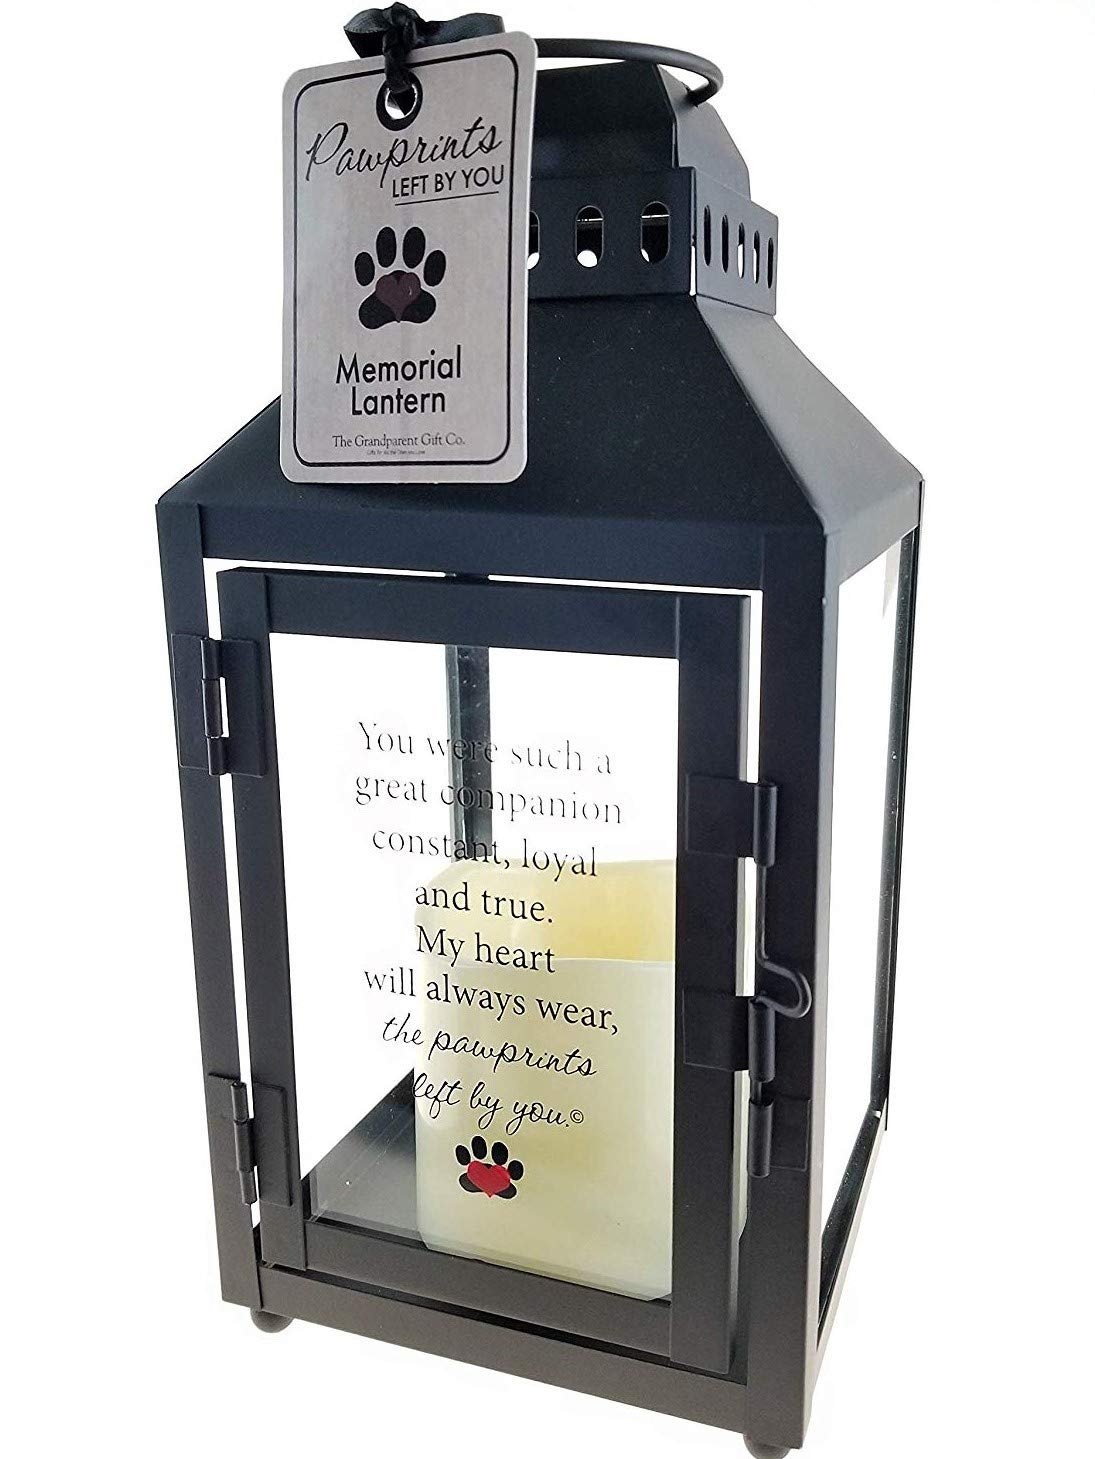 """The Grandparent Gift Co. Light and Love Pawprints Left by You Memorial Lantern - Bereavement or Sympathy Gift - 3"""" Flickering LED Candle Included - 10""""x4.75""""x4.75"""""""